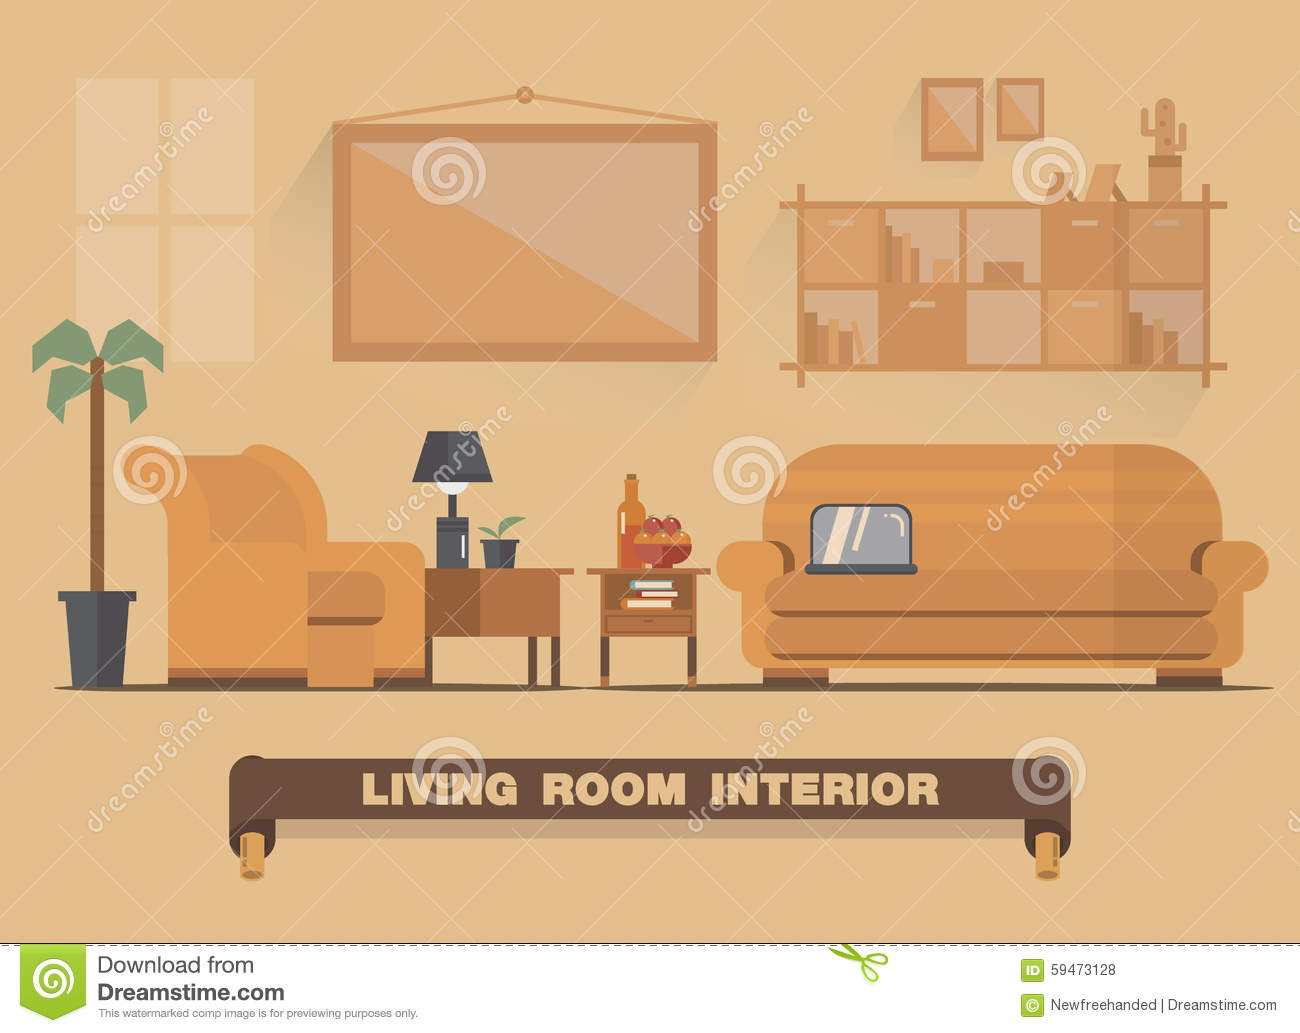 Living room interior element flat design earth tone stock vector image 59473128 - In drowing room interiar design ...